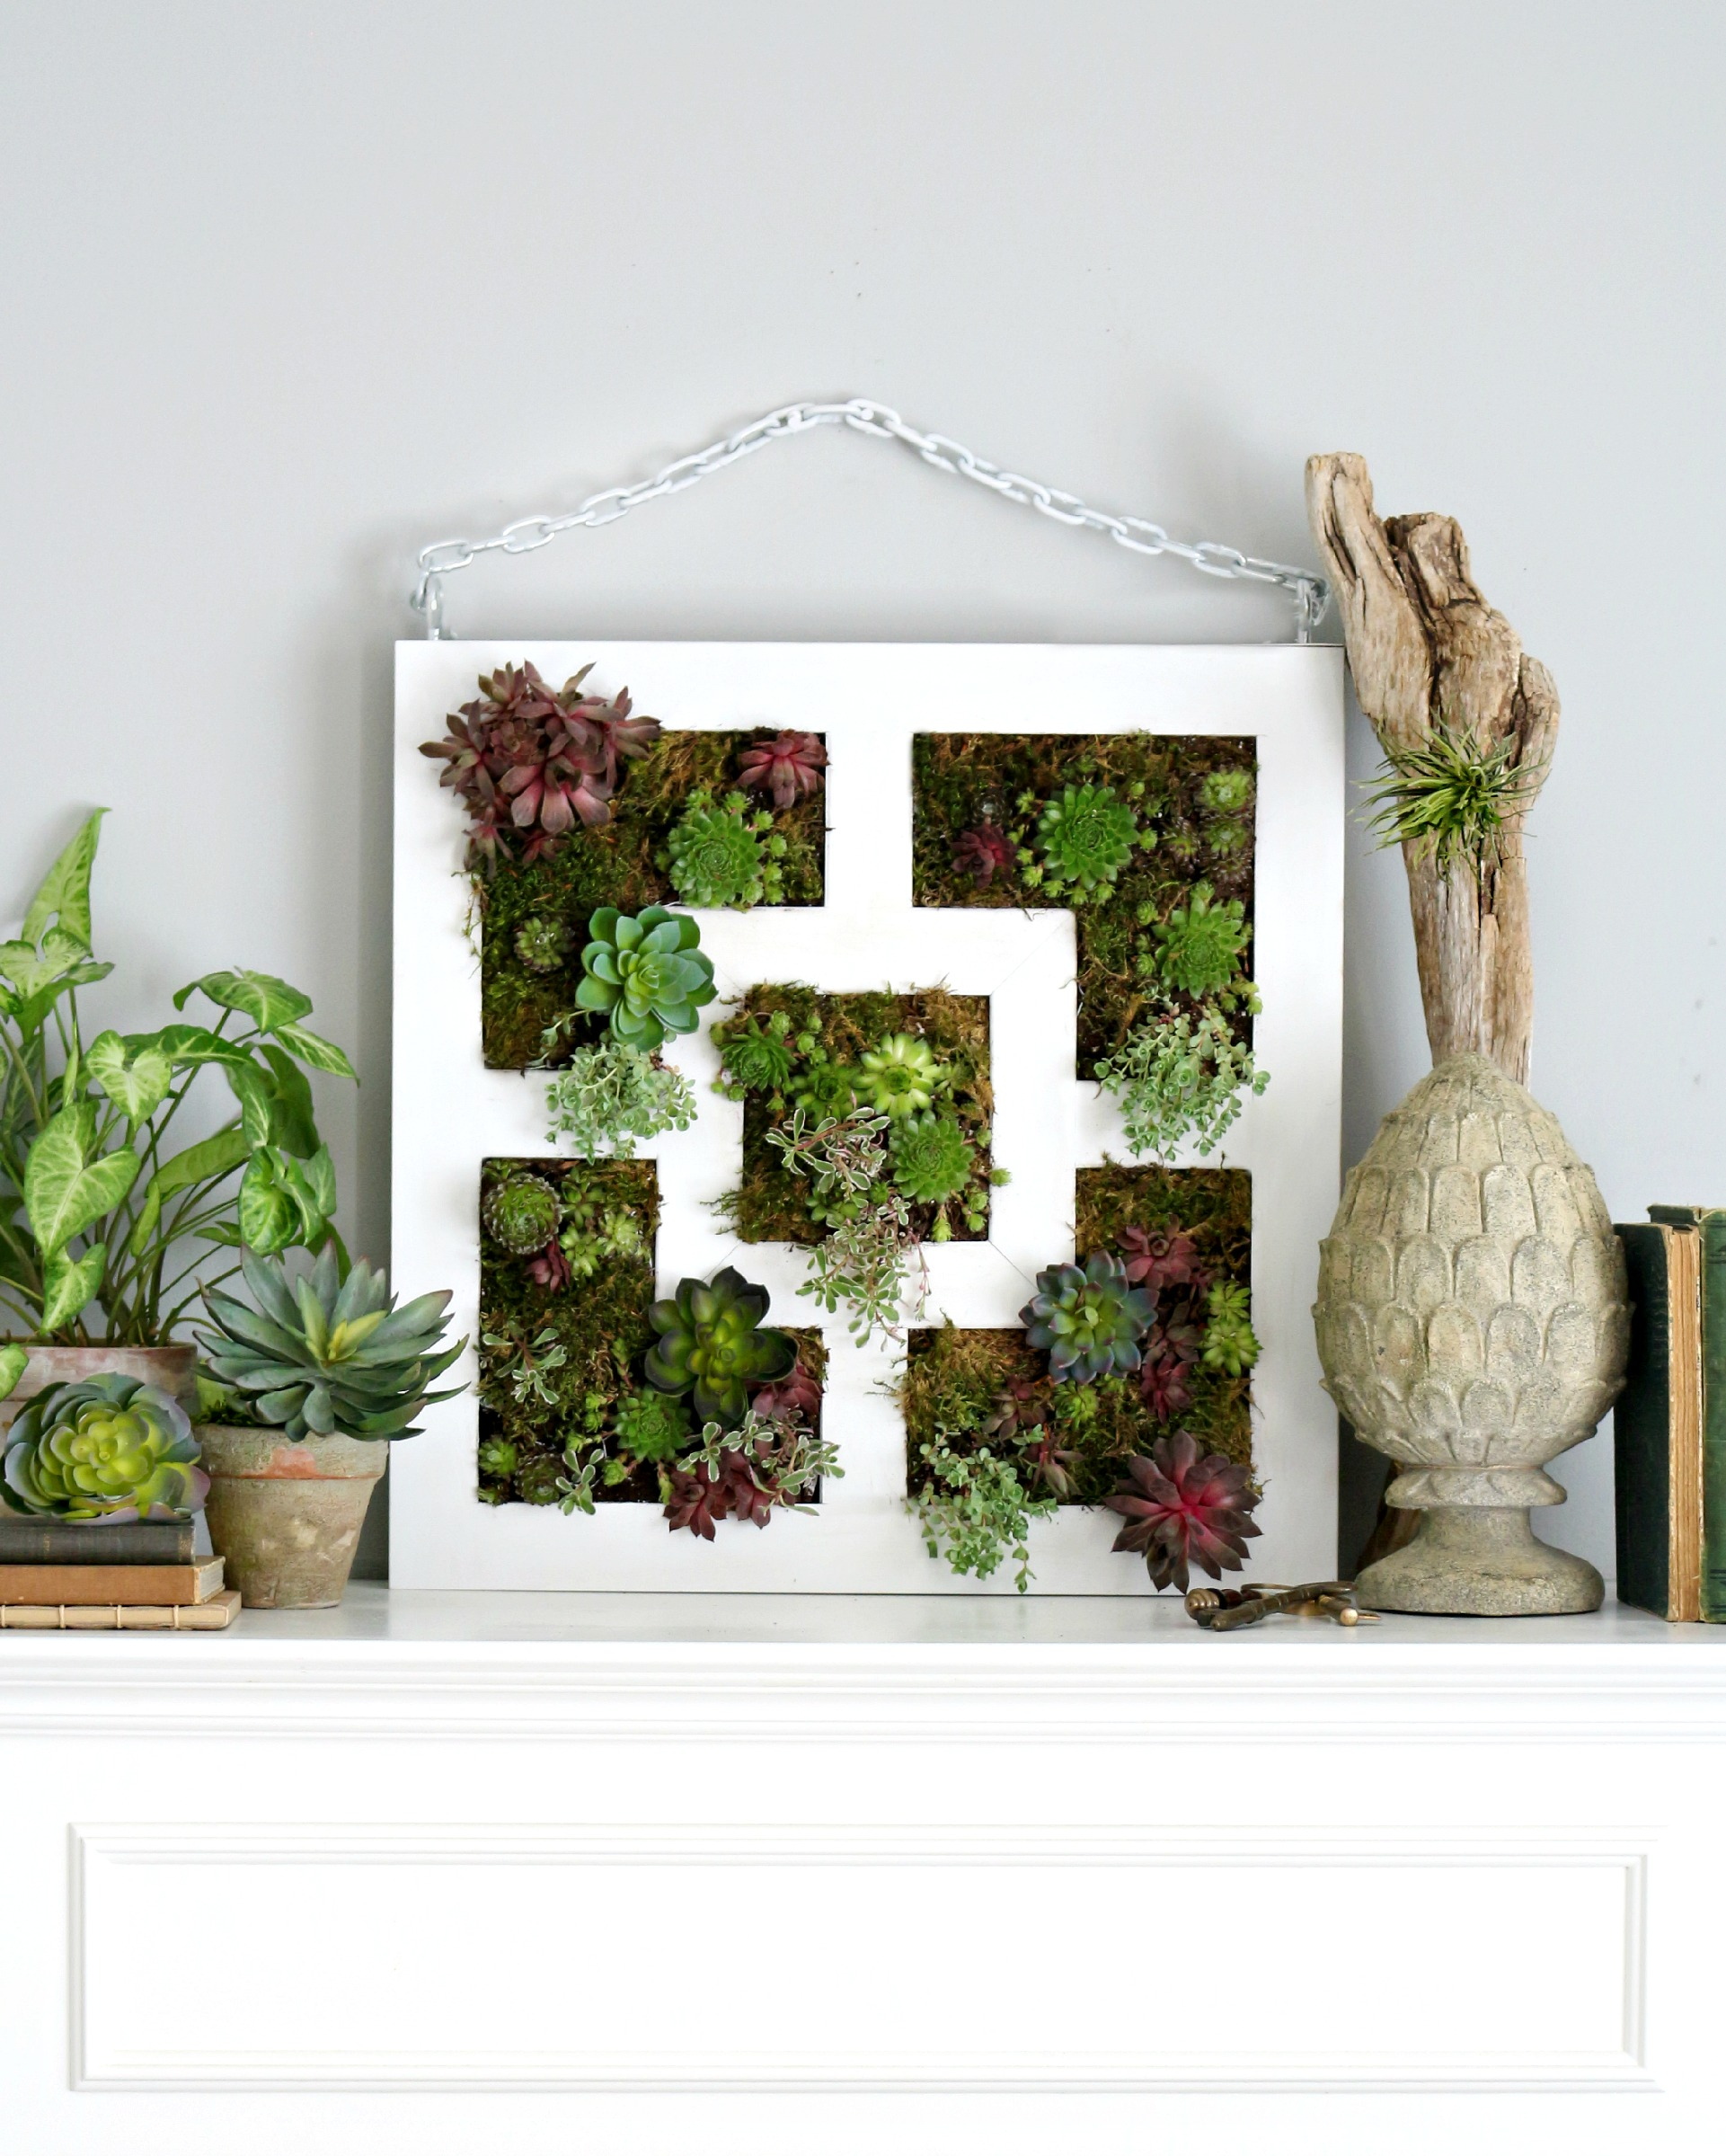 Ikea lack table hack to succulent vertical garden - Giardino verticale ikea ...